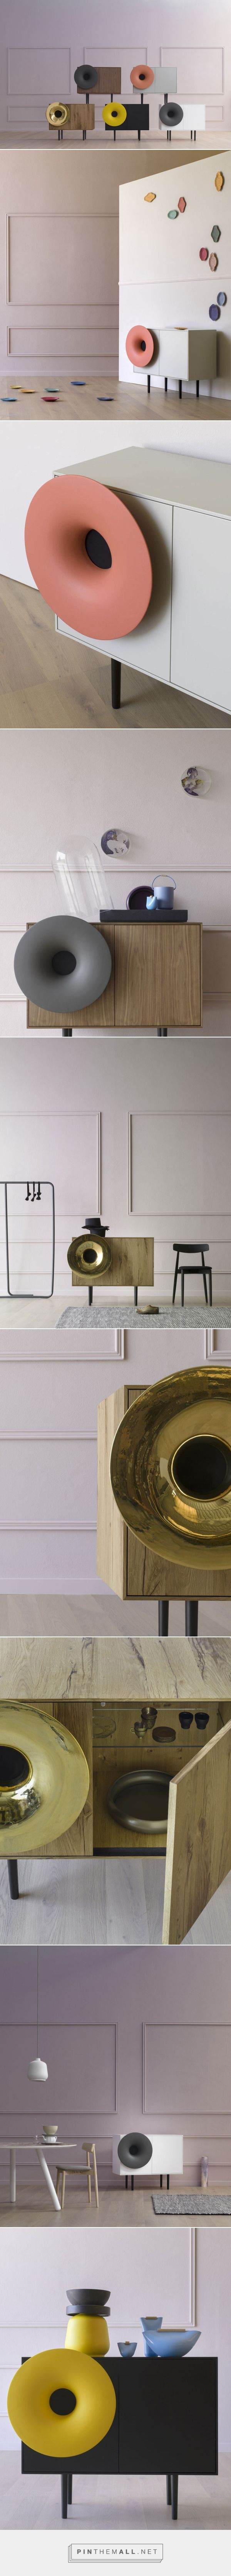 A Cabinet with A Bluetooth Speaker - Design Milk - created via https://pinthemall.net